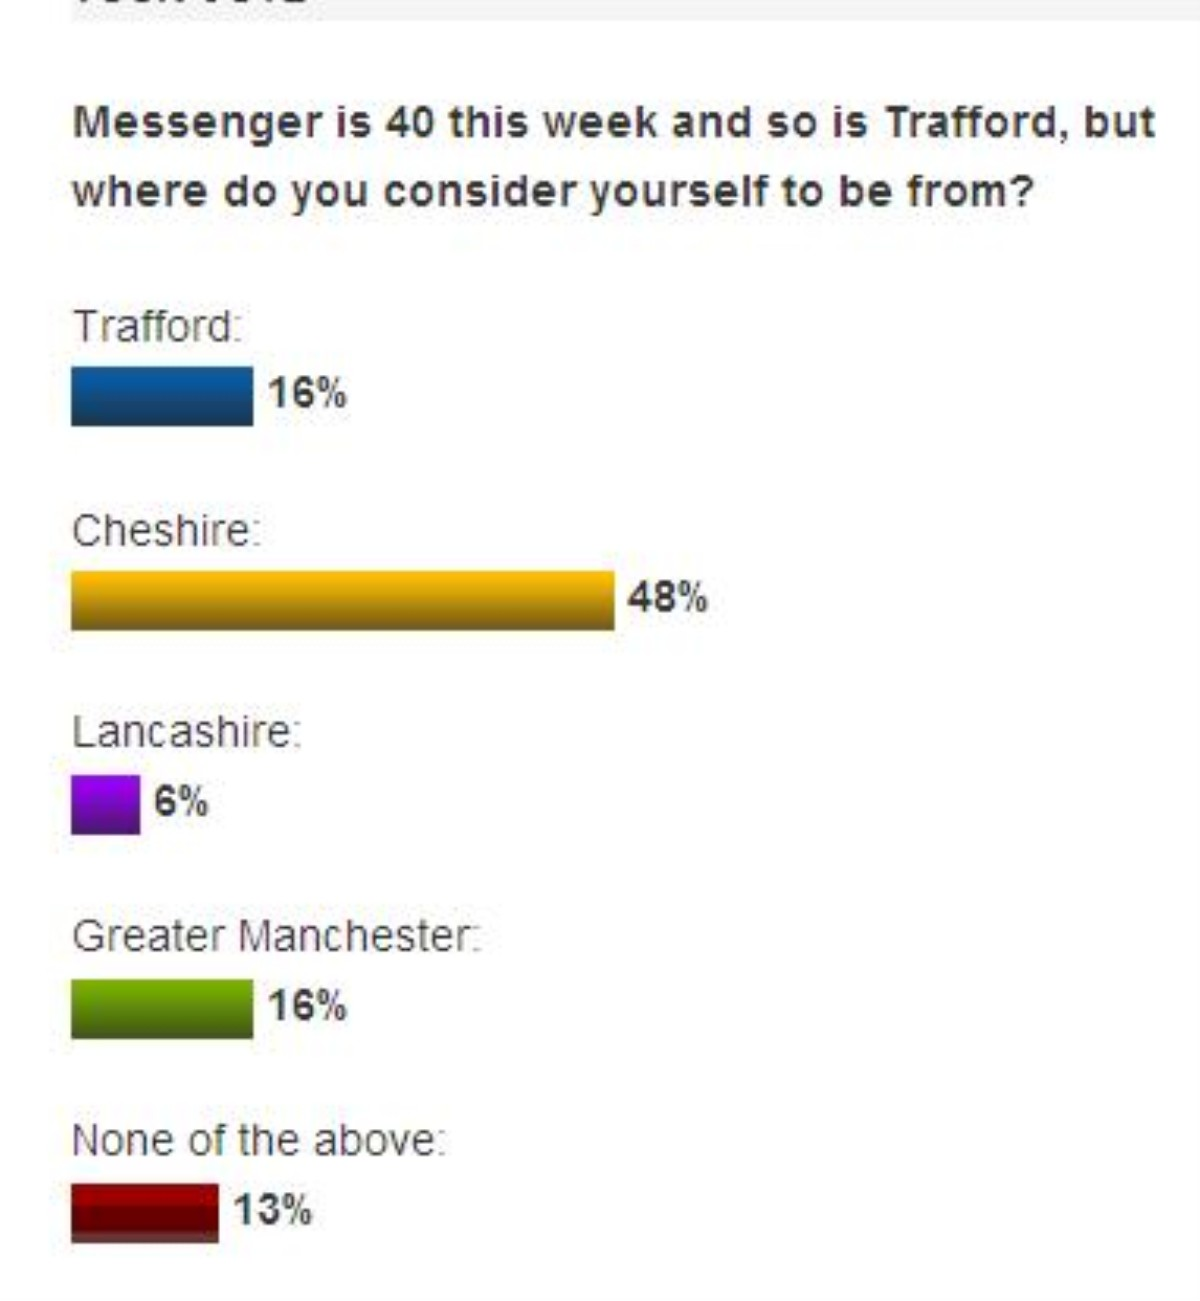 Are you from Trafford, Cheshire, Lancashire